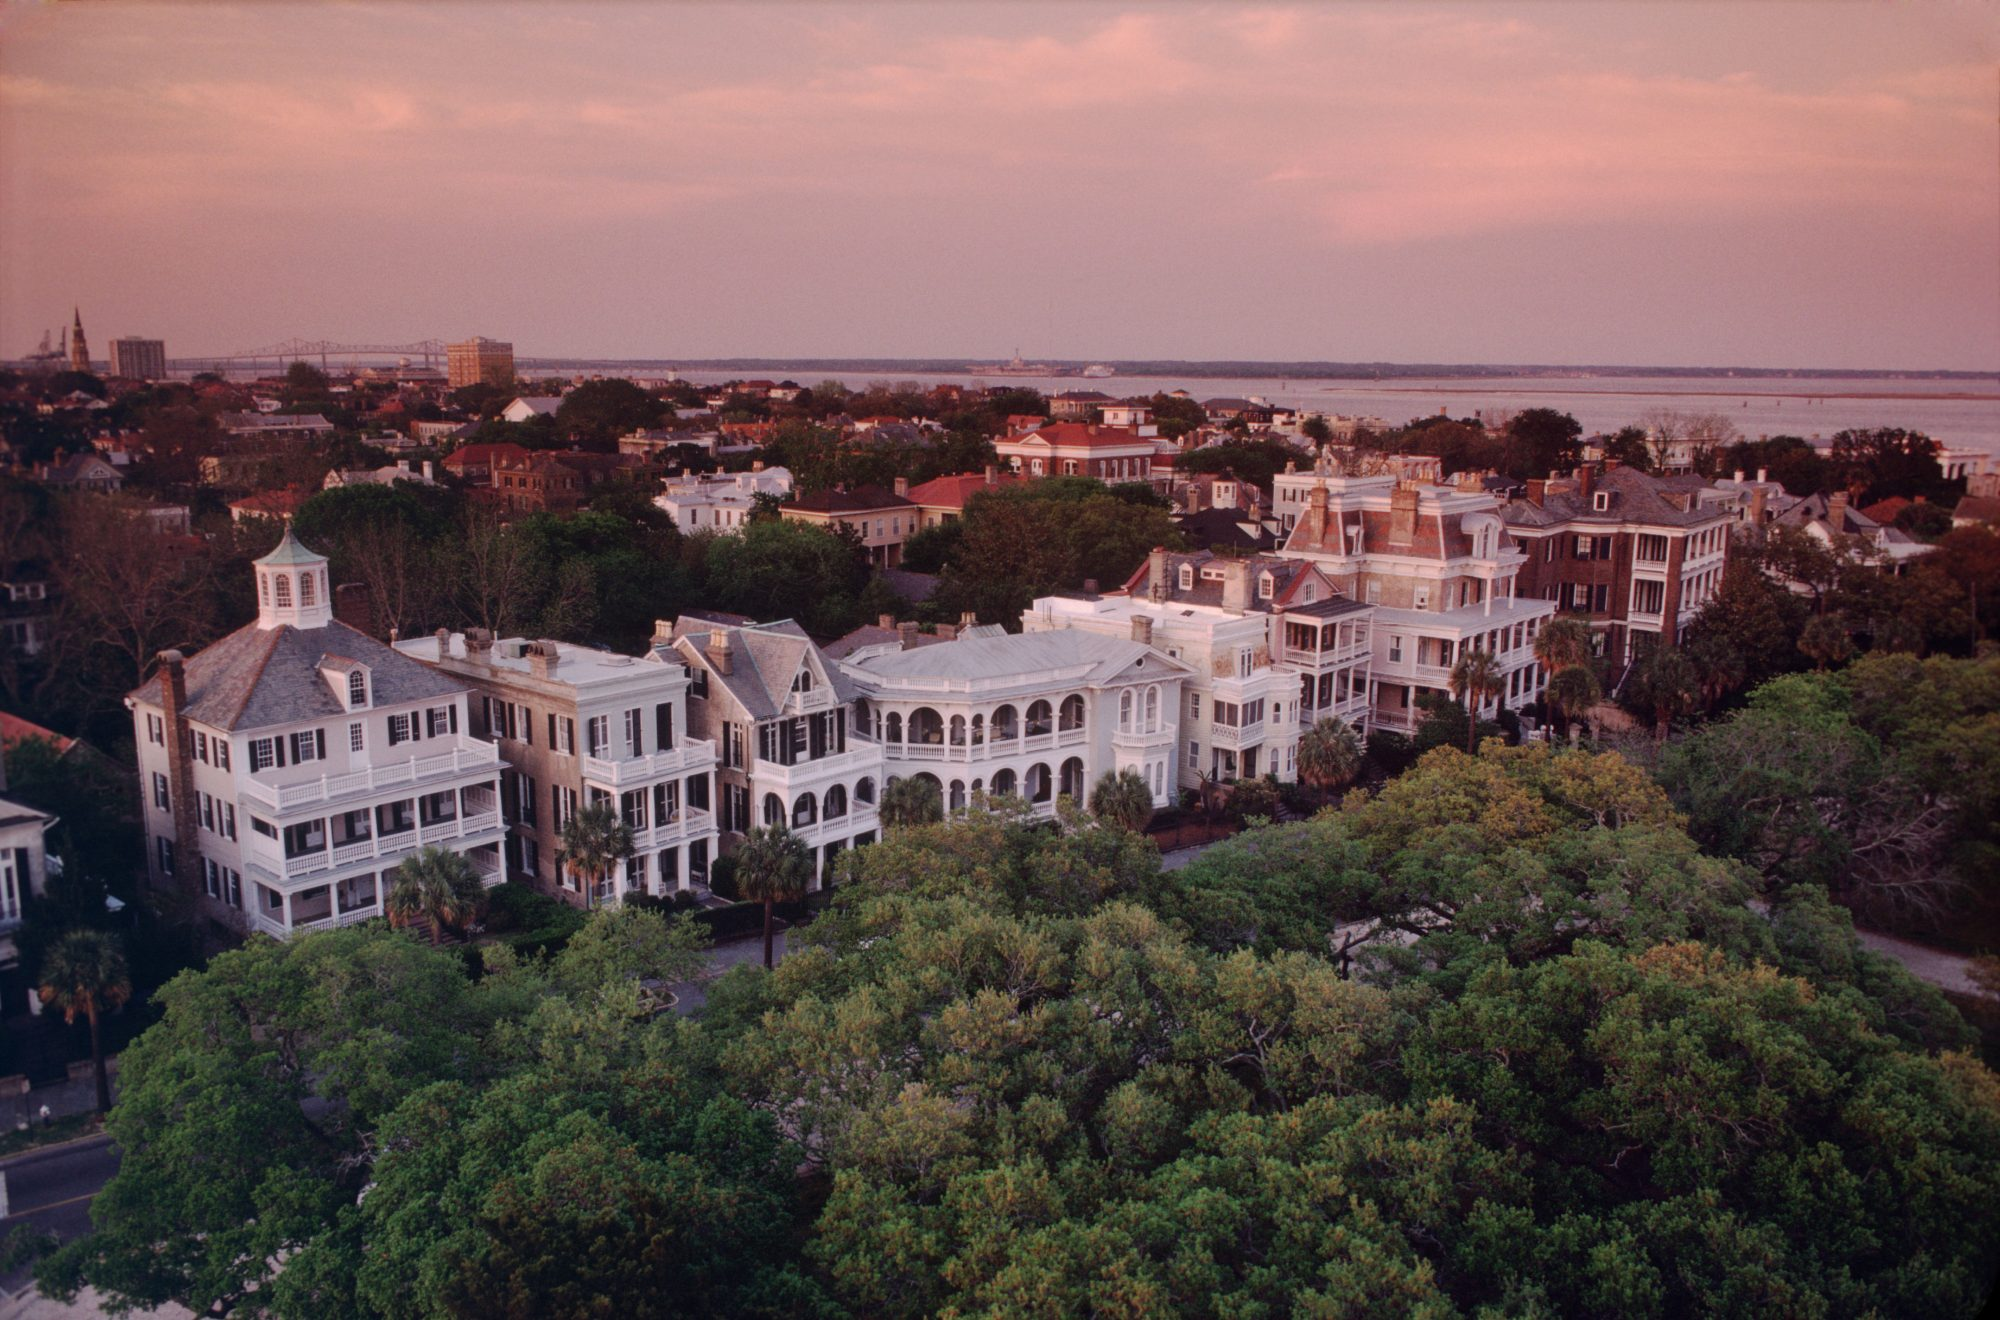 America's Most Romantic Cities: No. 1 Charleston, SC